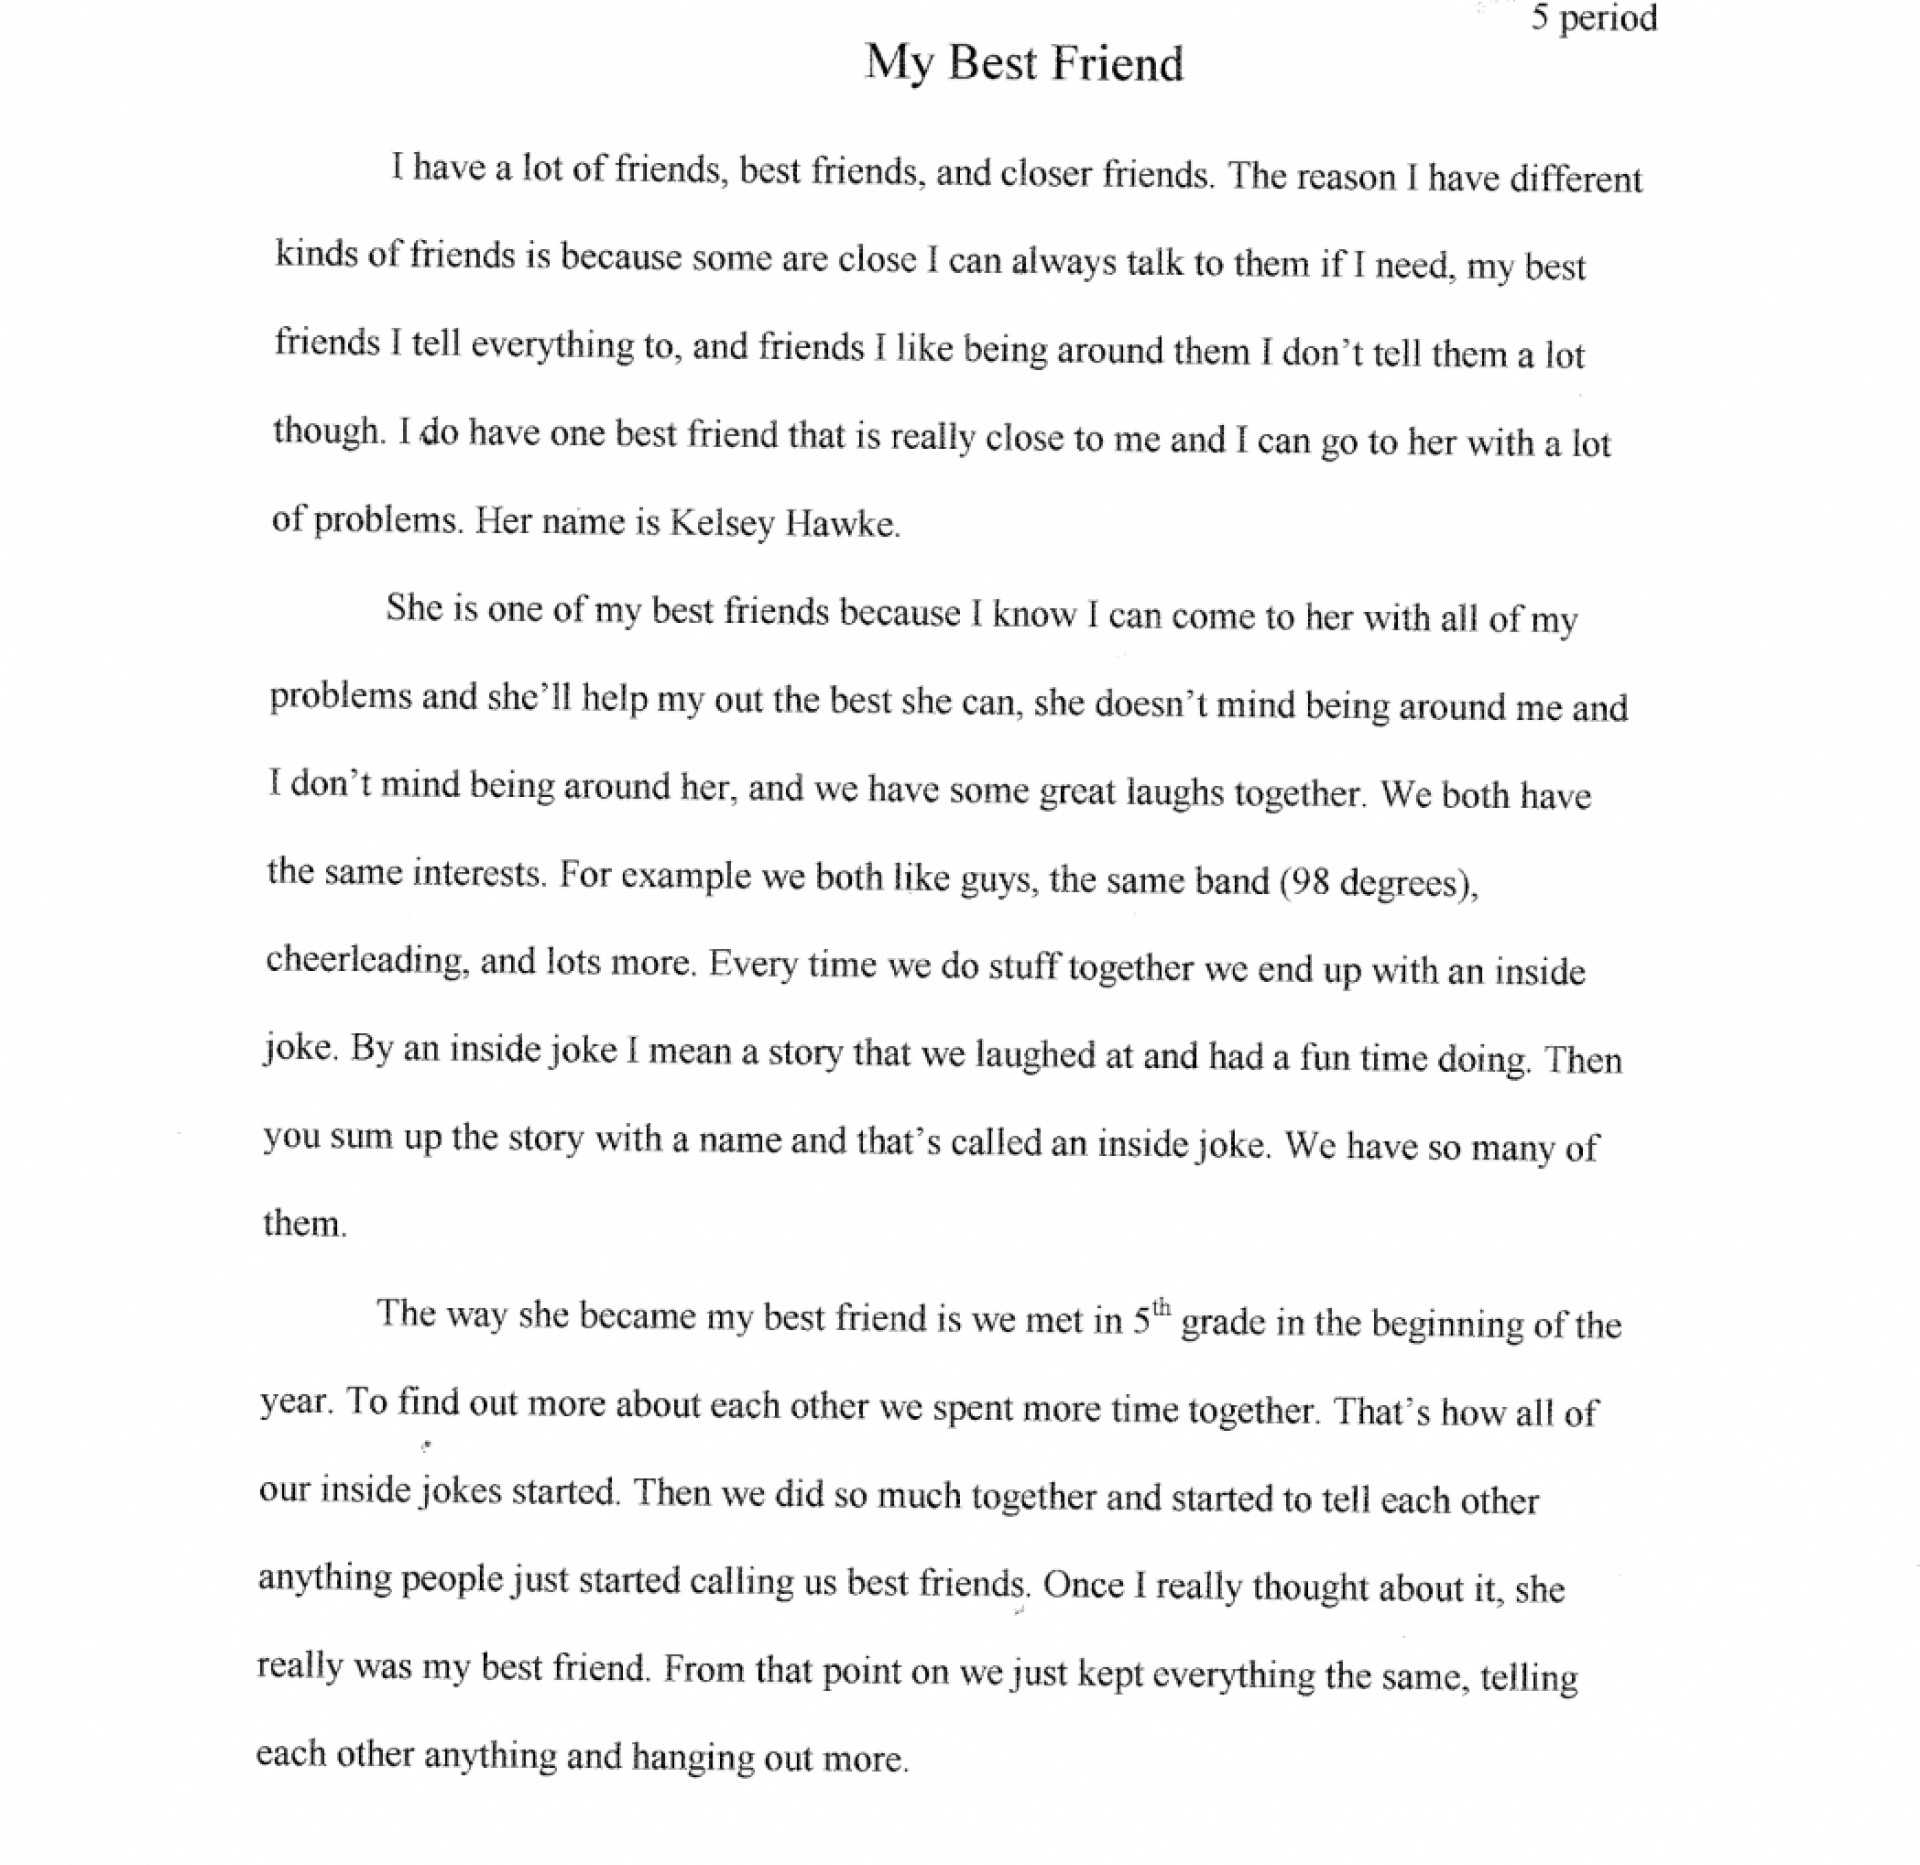 my friend essay example english best essays on friends    essay example kindness writing about my best friend essays do tips  th bestfriend books curriculum